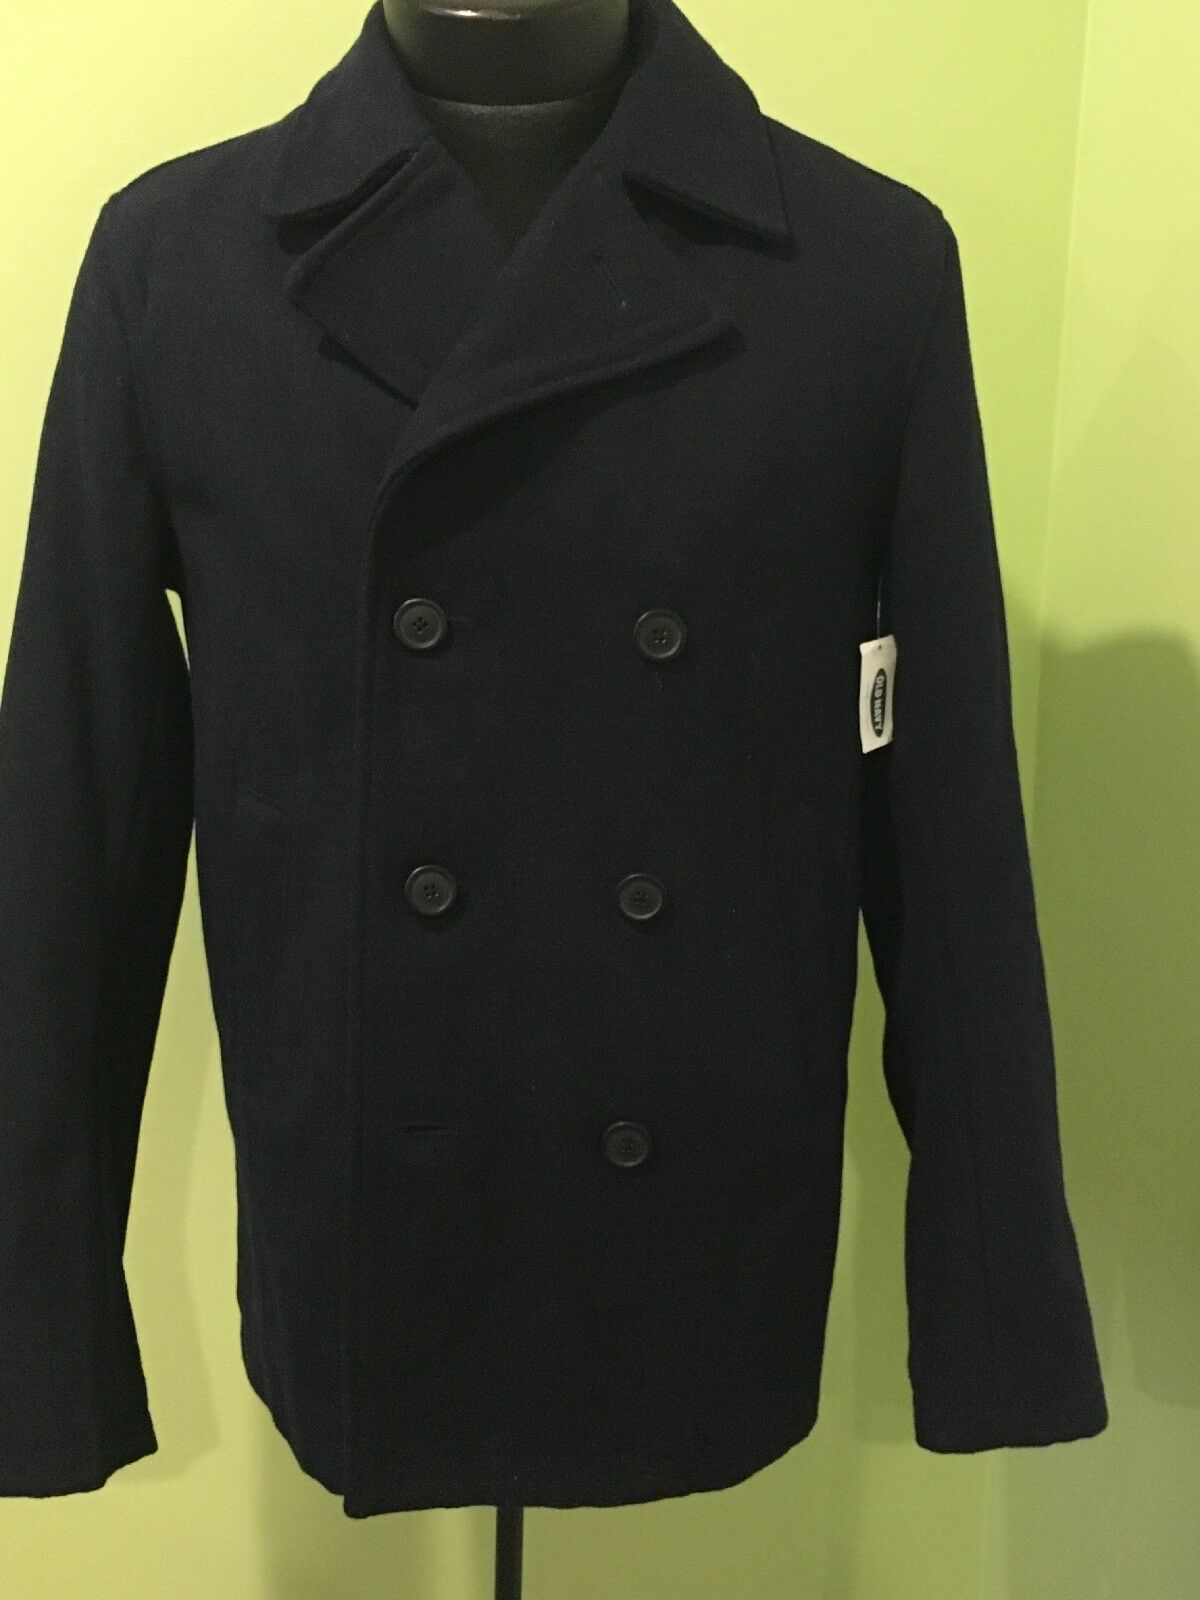 Old Navy bluee Wool Peacoat Men's Small Men New With Tags NWT S Pea Coat NAVY